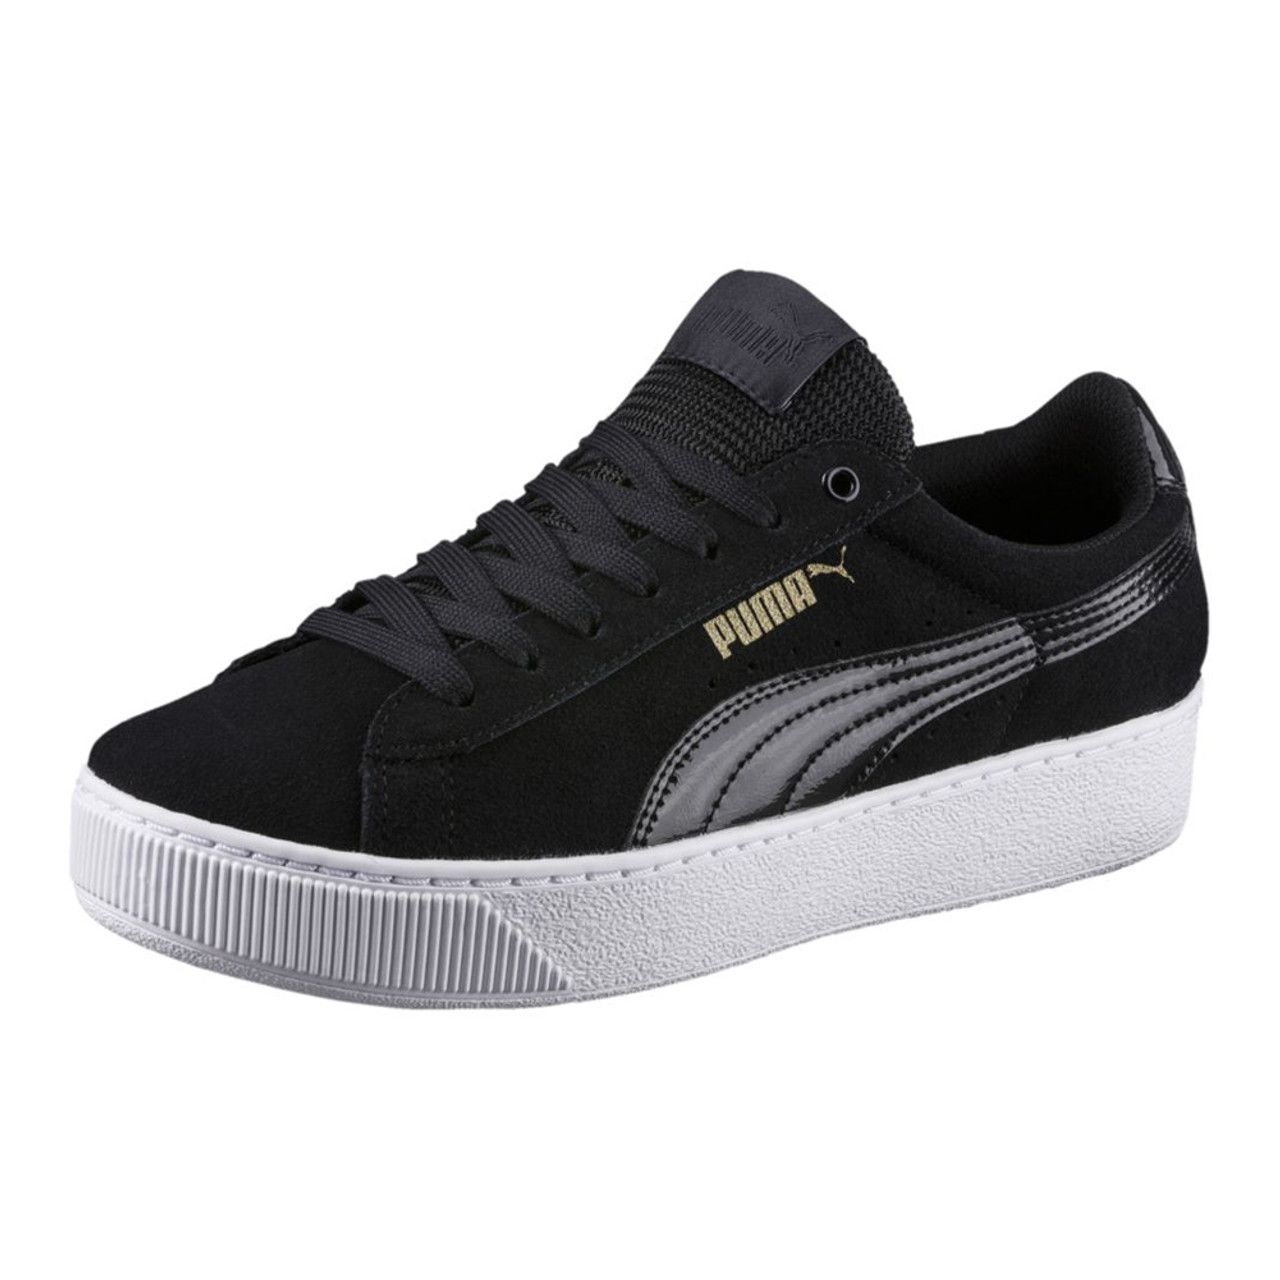 Puma Women s Puma Vikky Platform Sneaker Black White - Shop now   Shoolu.com 072fef51f9